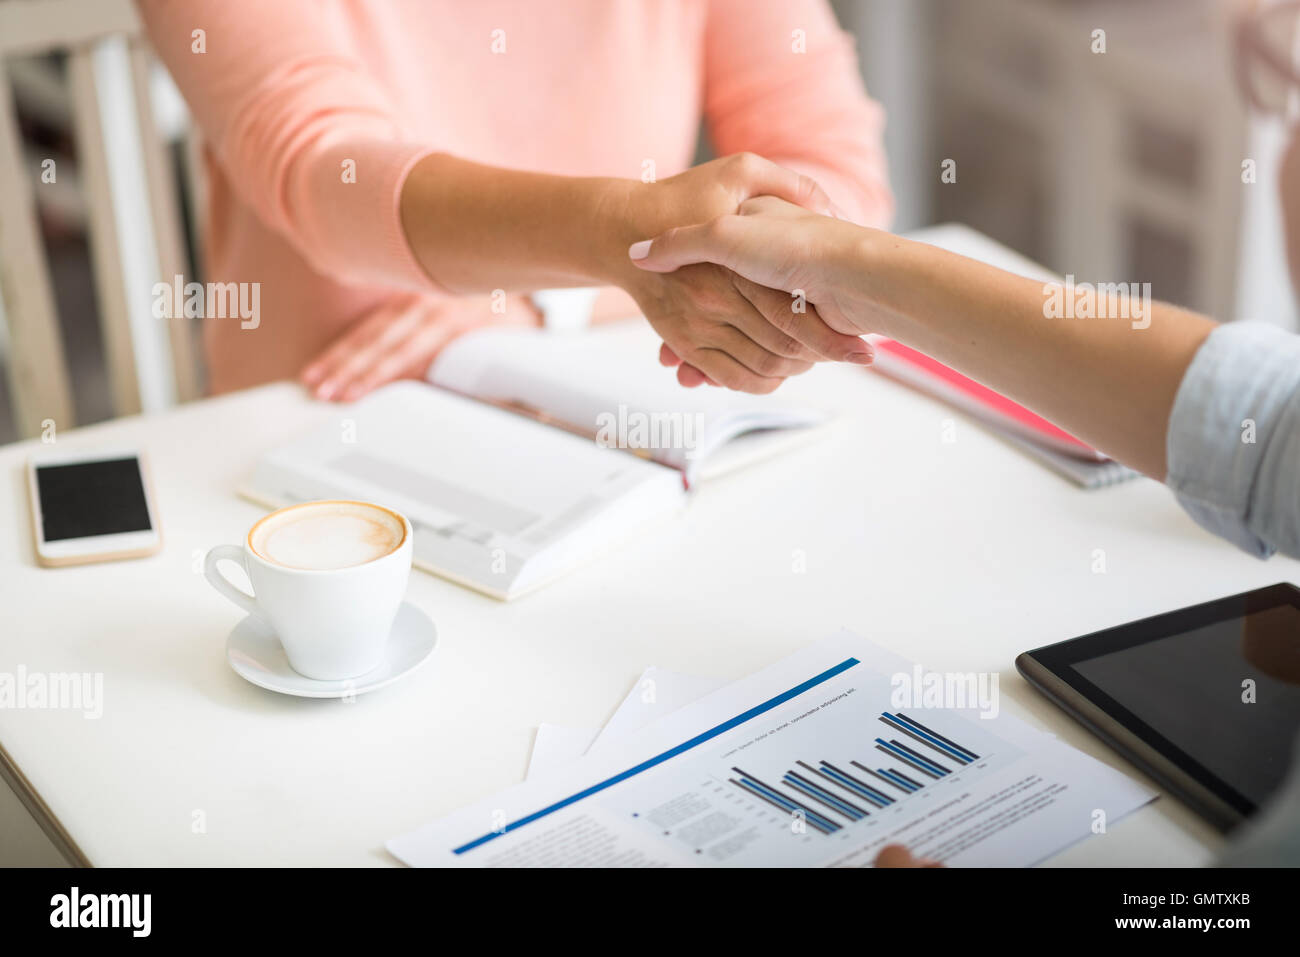 Pleasant women shaking hands Stock Photo